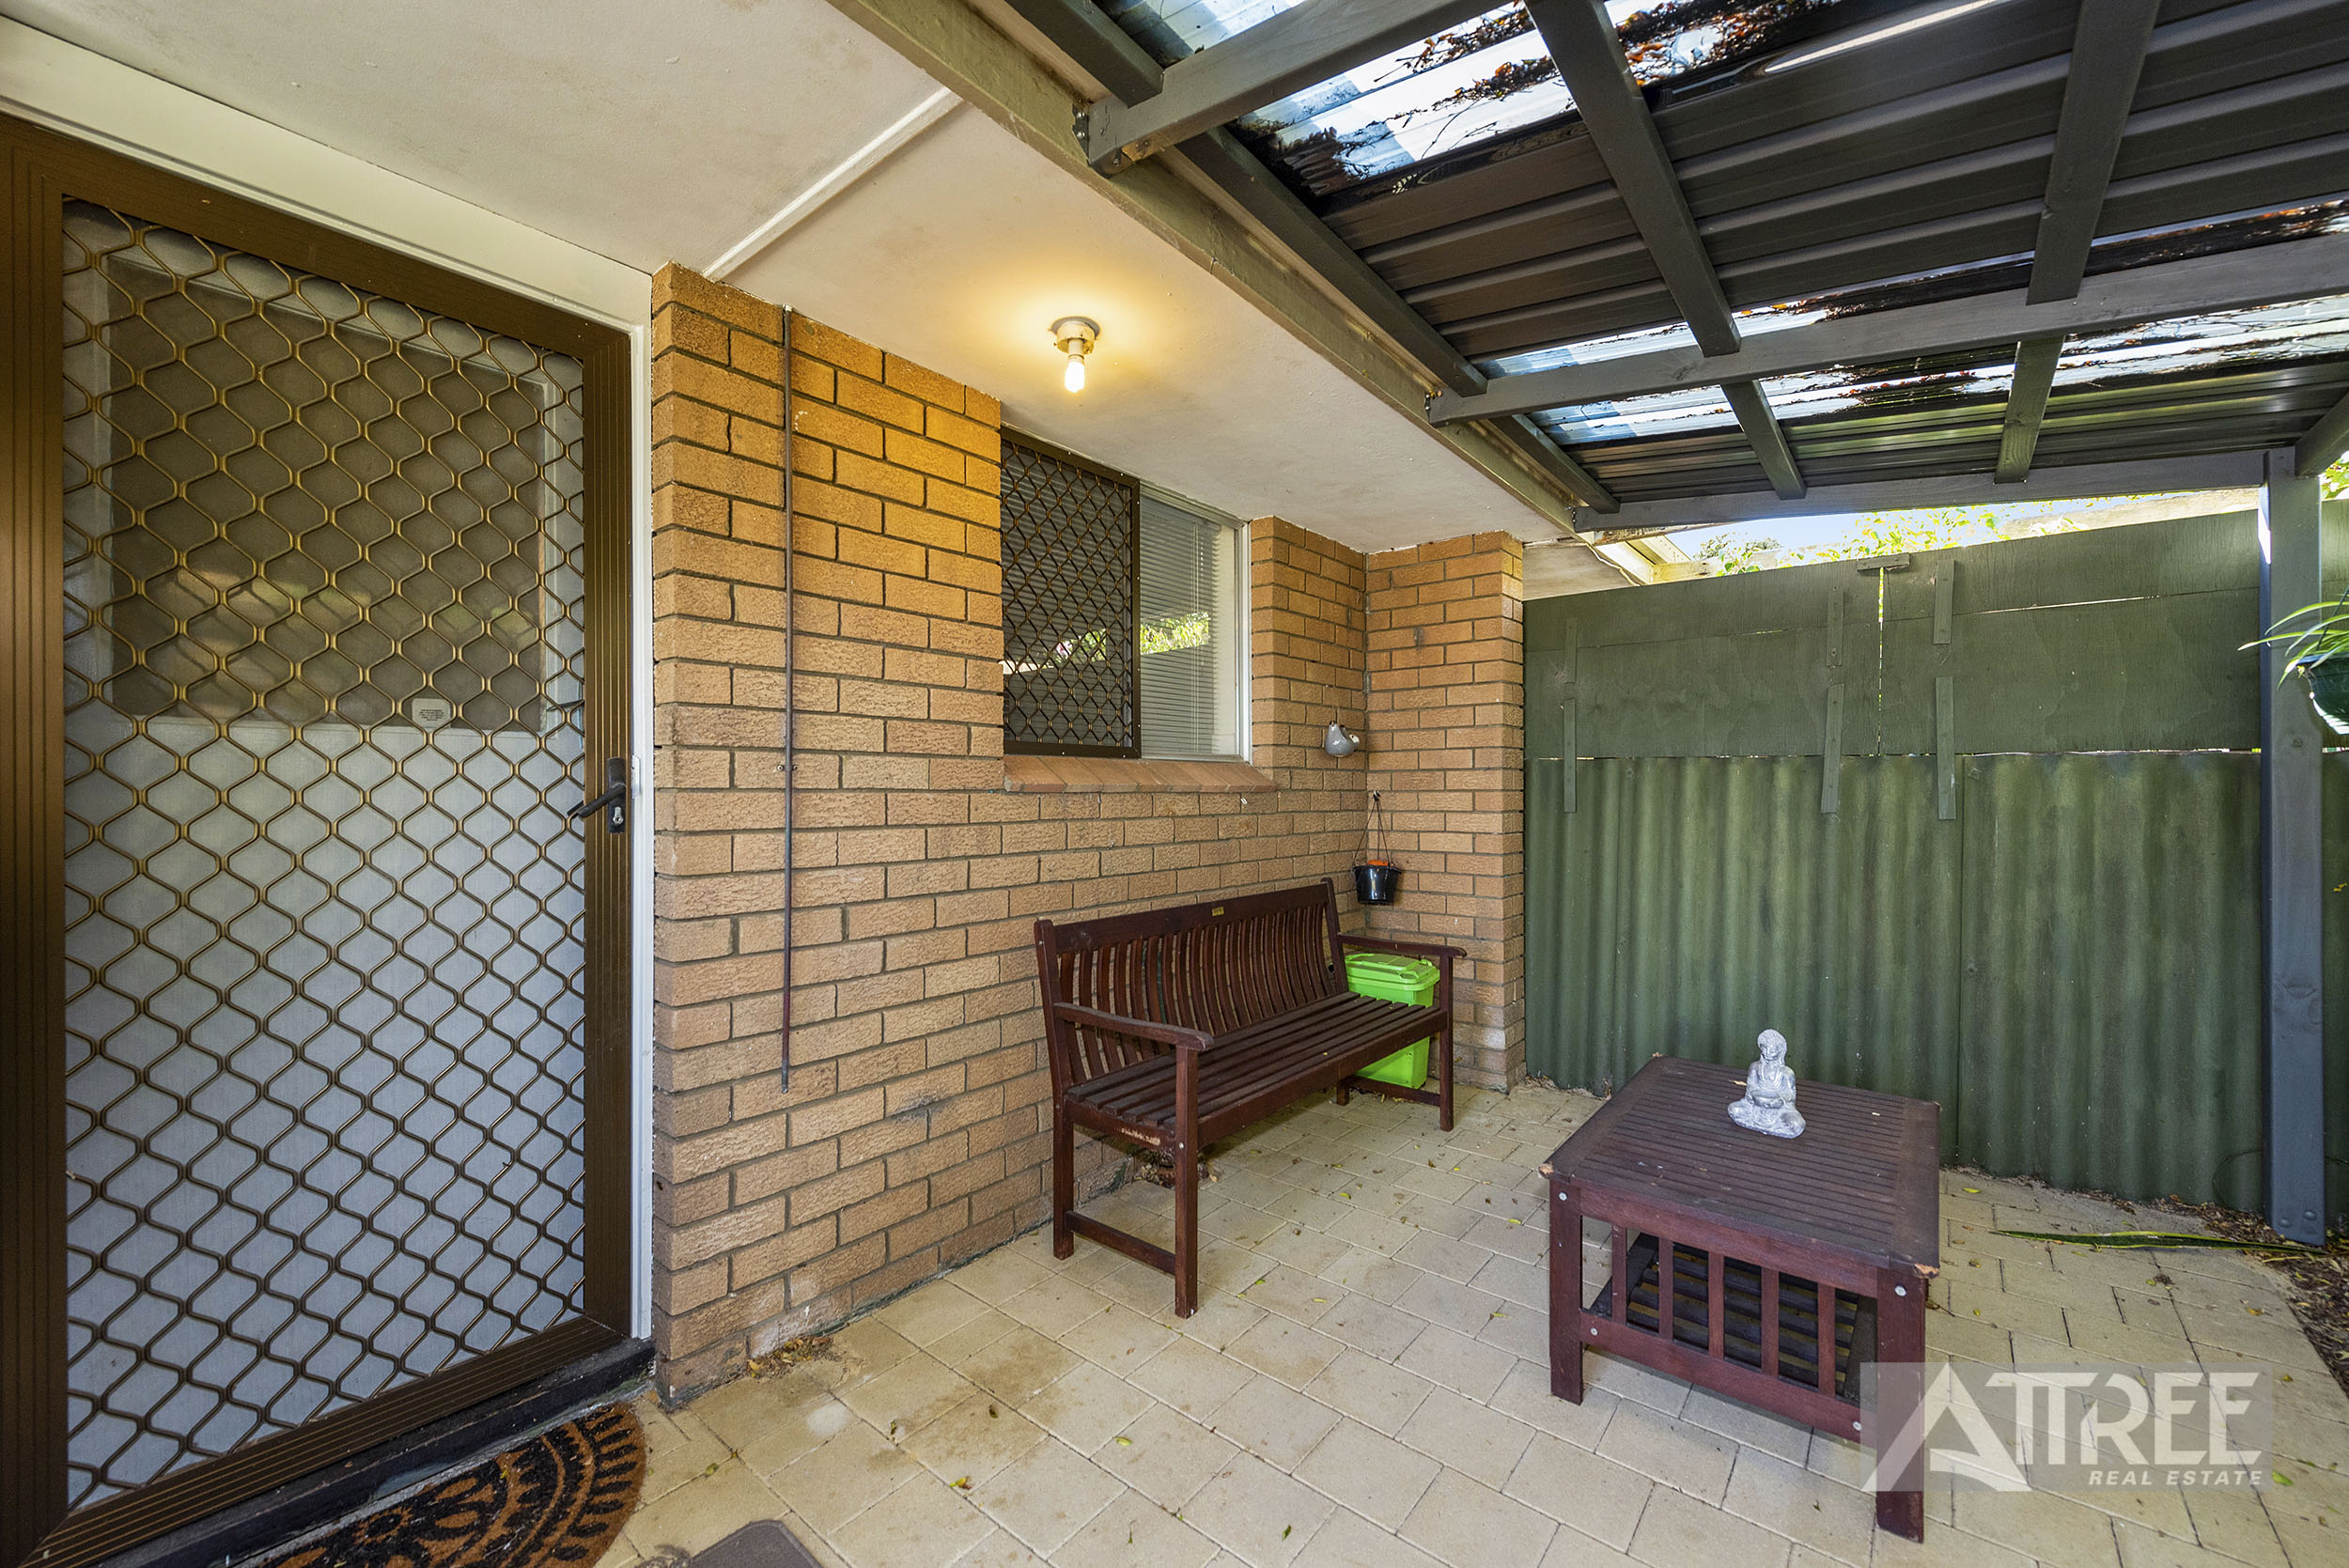 Property for sale in SAFETY BAY, 3/5 Jesmond Street : Attree Real Estate